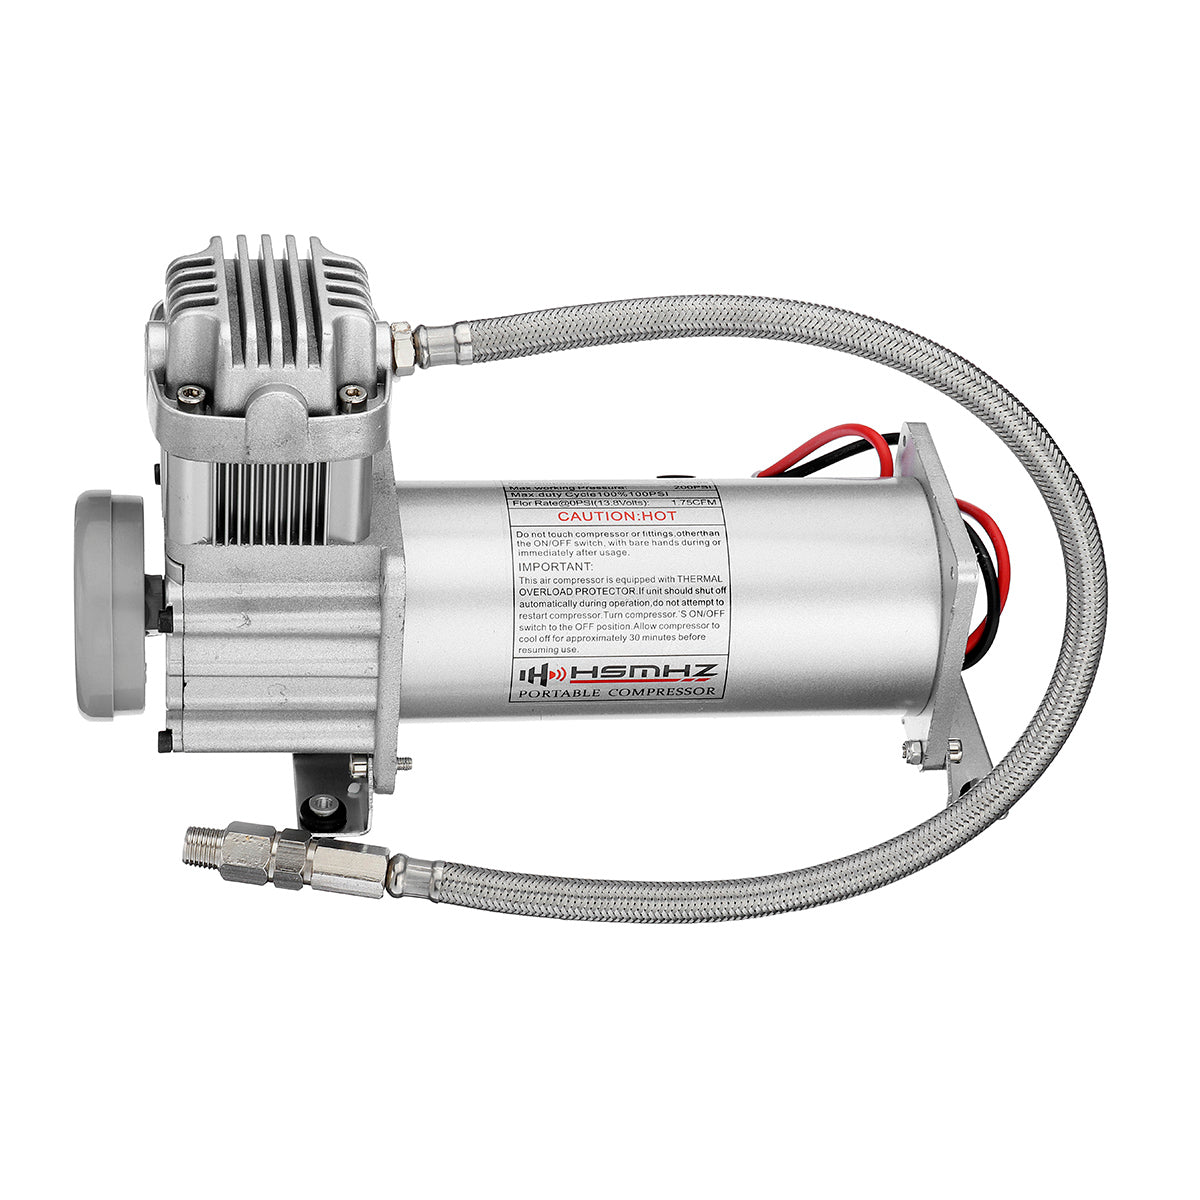 12V 200 PSI Silver Air Compressor 1/4'' Hose Set With Relays Switch For Car Truck Train Horns or Suspensions